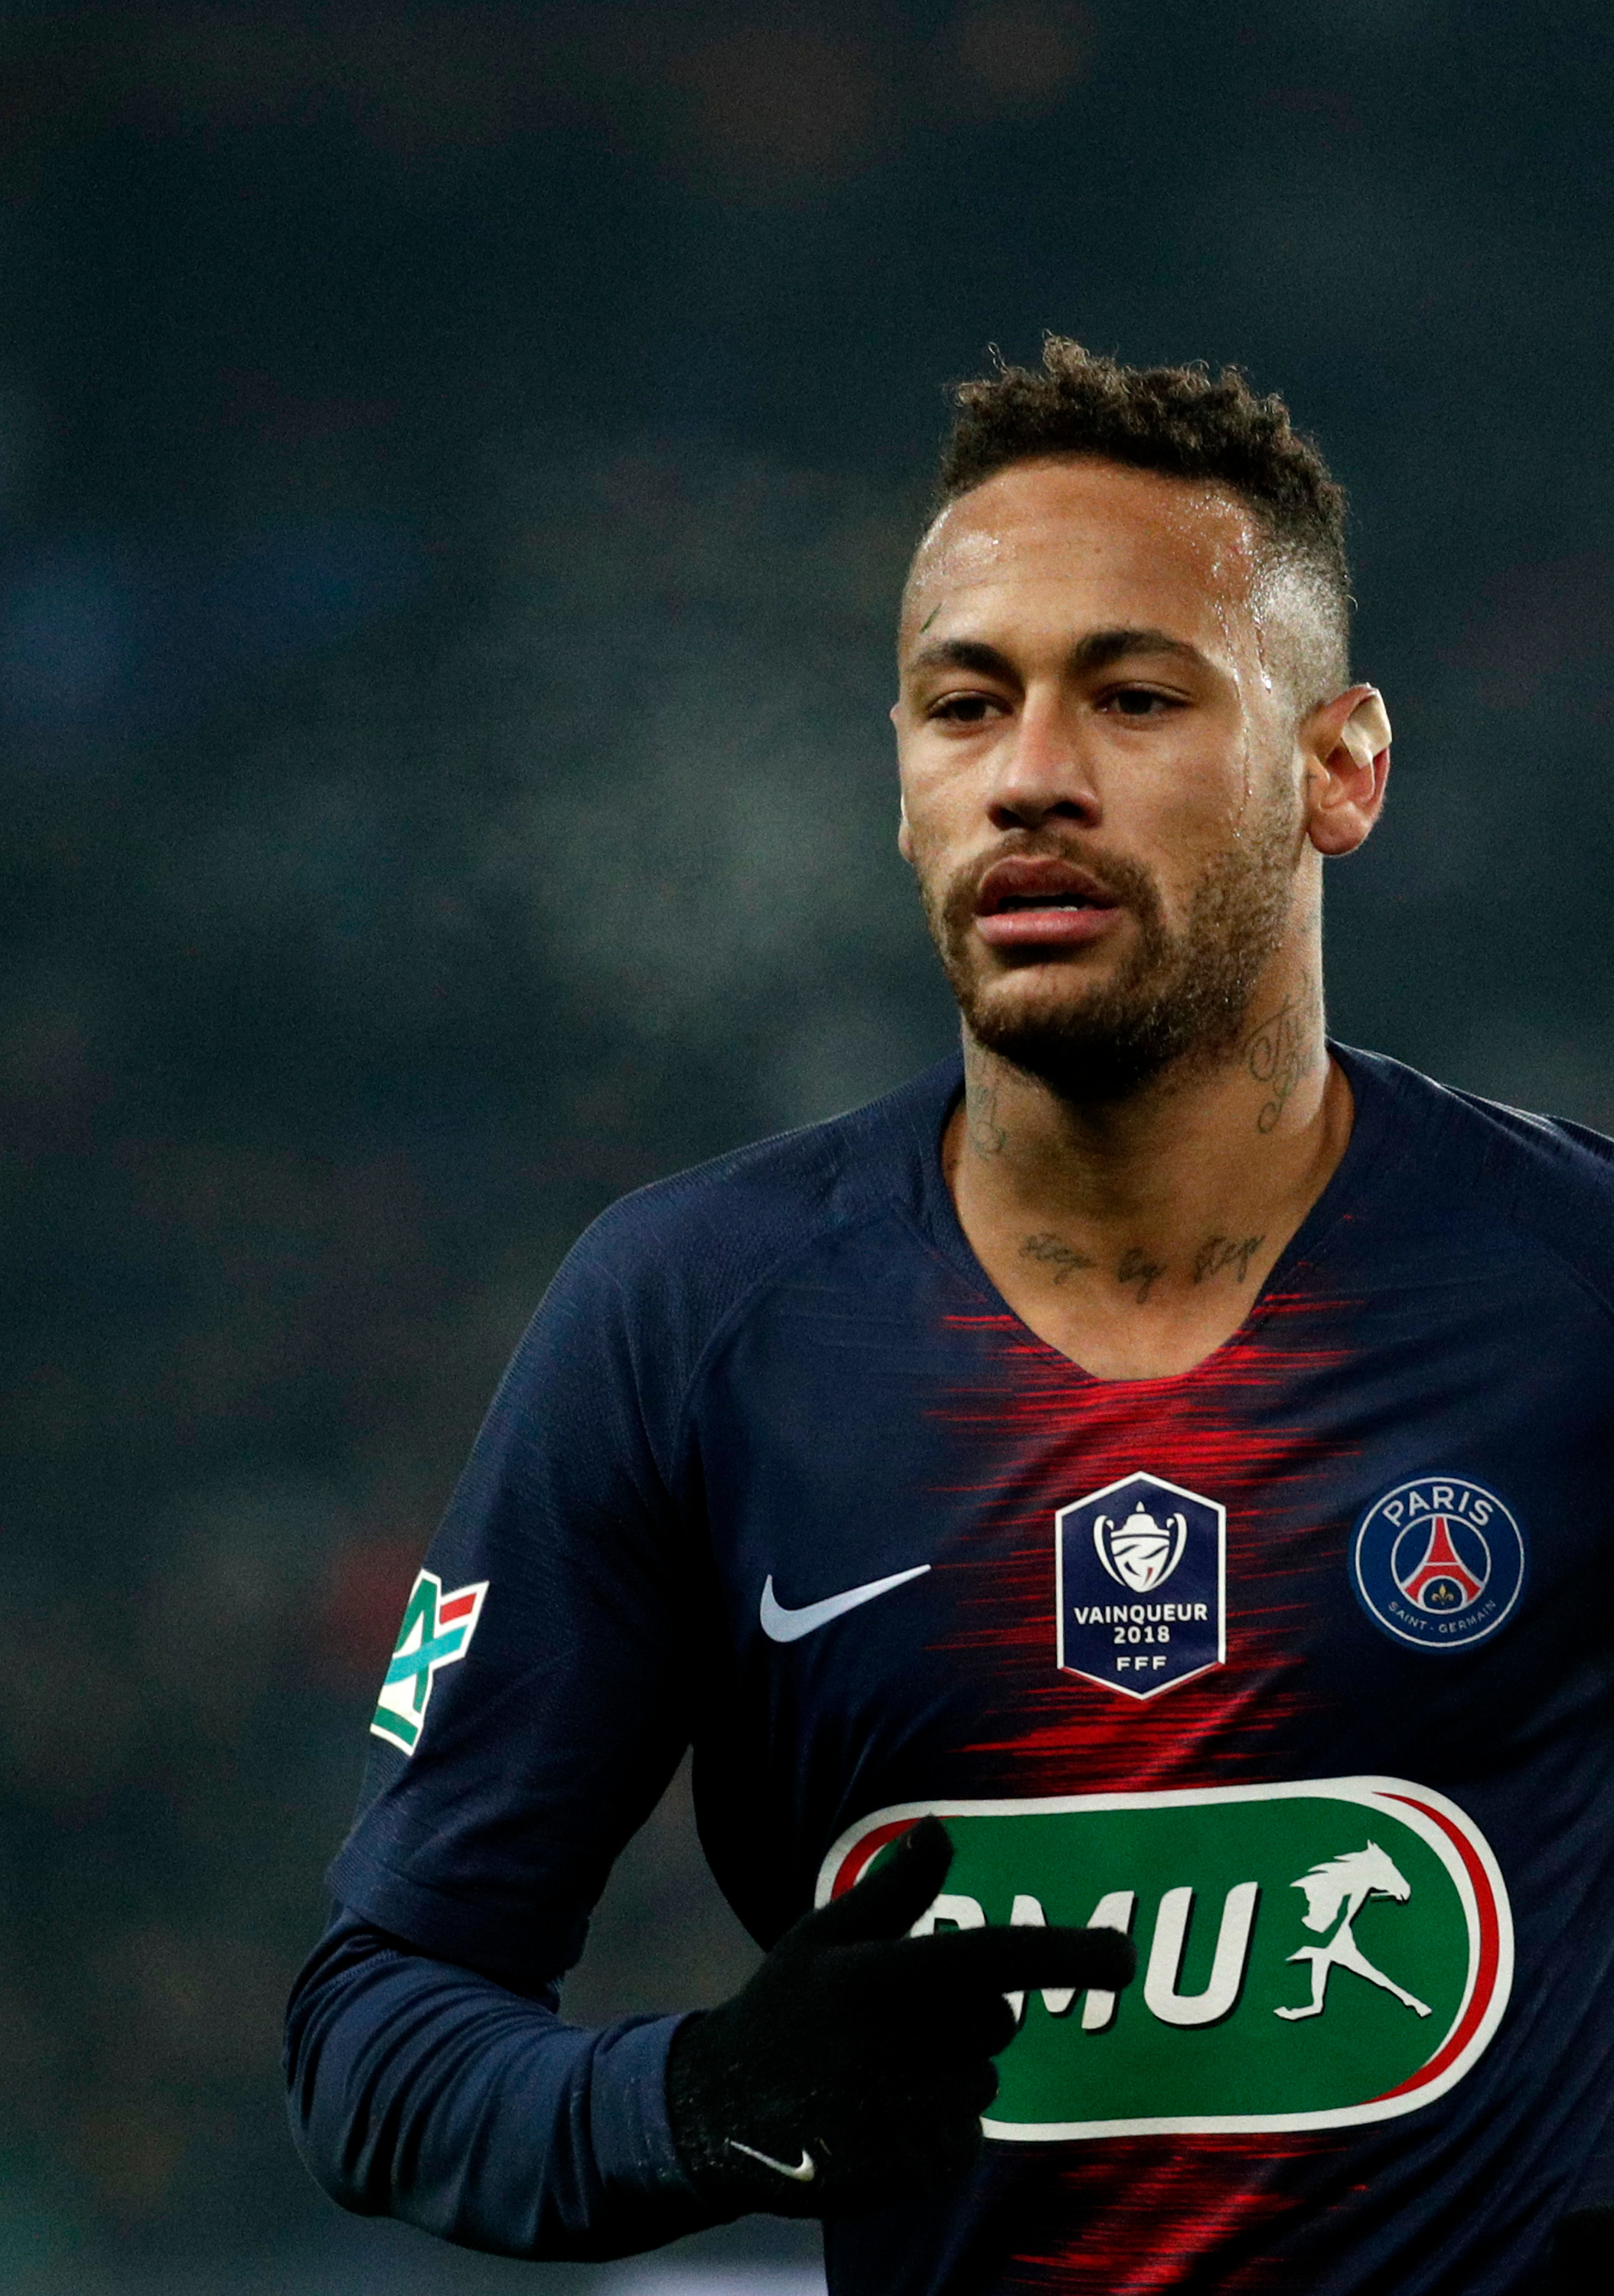 Neymar of Paris Saint Germain in action during the French Cup de France round of 32 soccer match between Paris Saint-Germain (PSG) and Strasbourg in Paris, France, 23 January 2019.Paris Saint Germain vs RC Strasbourg, France - 23 Jan 2019